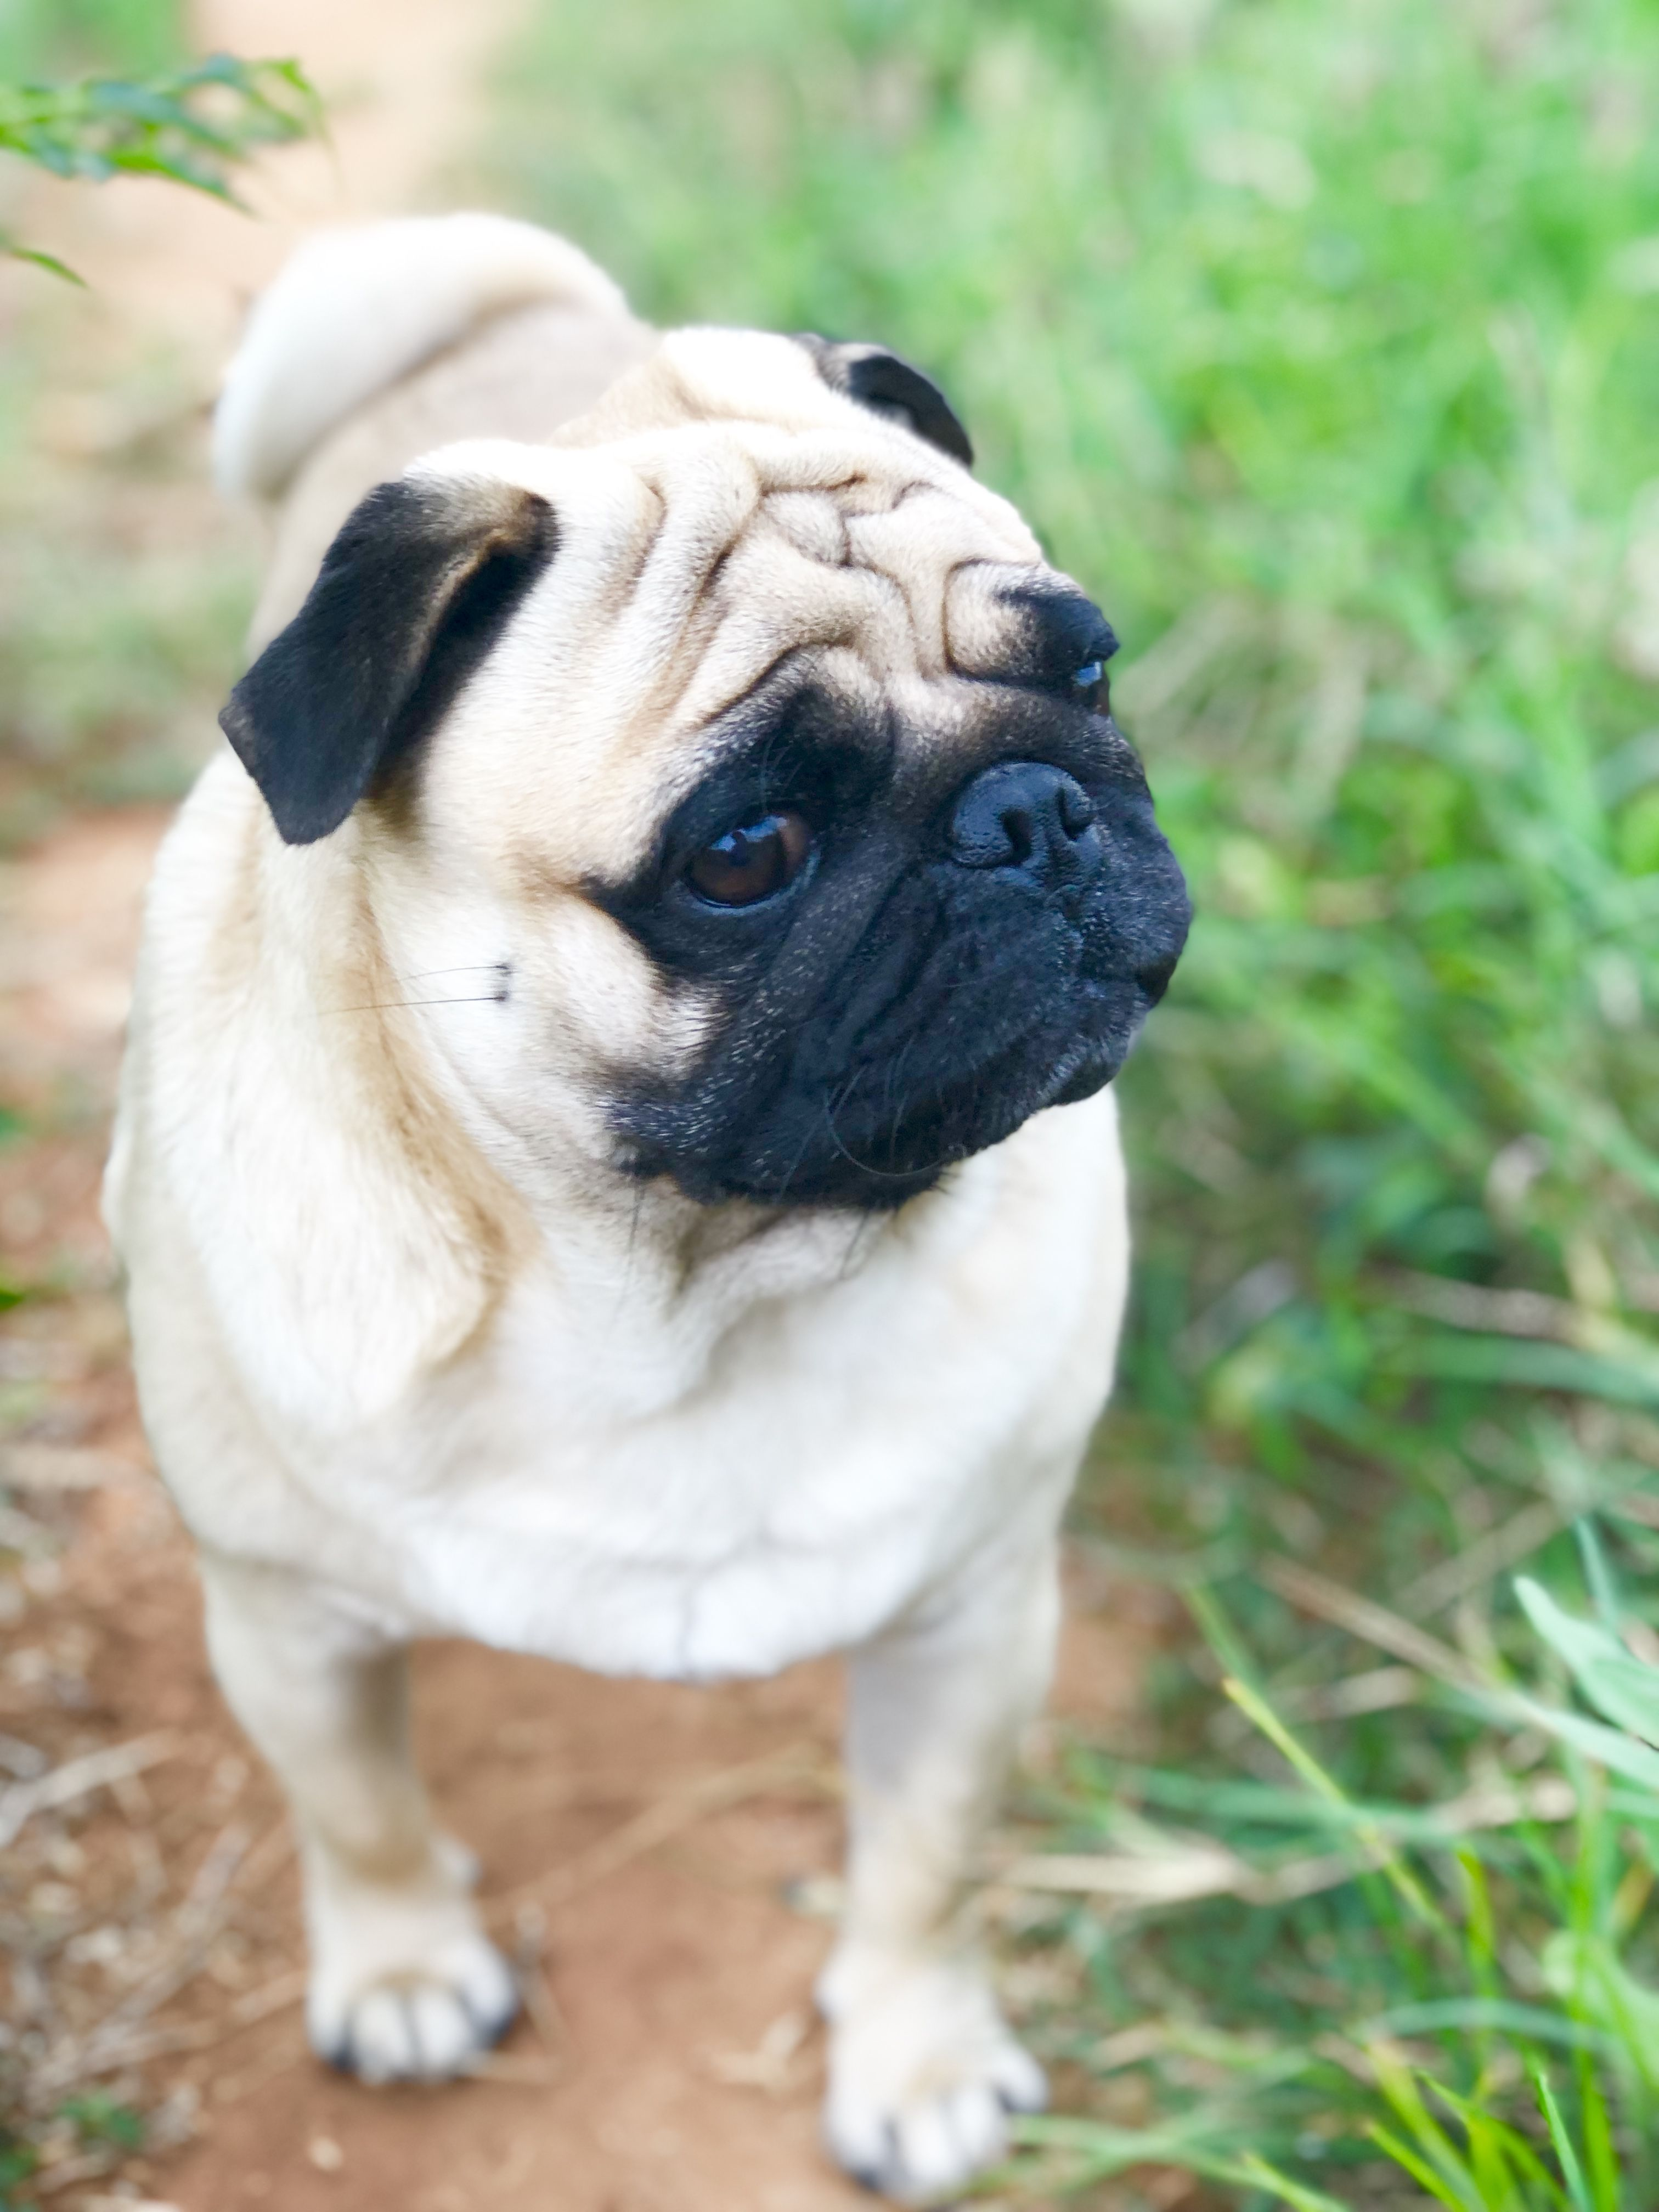 Idea By Cooljay On Pogo The Pug Cute Pug Puppies Pug Dog